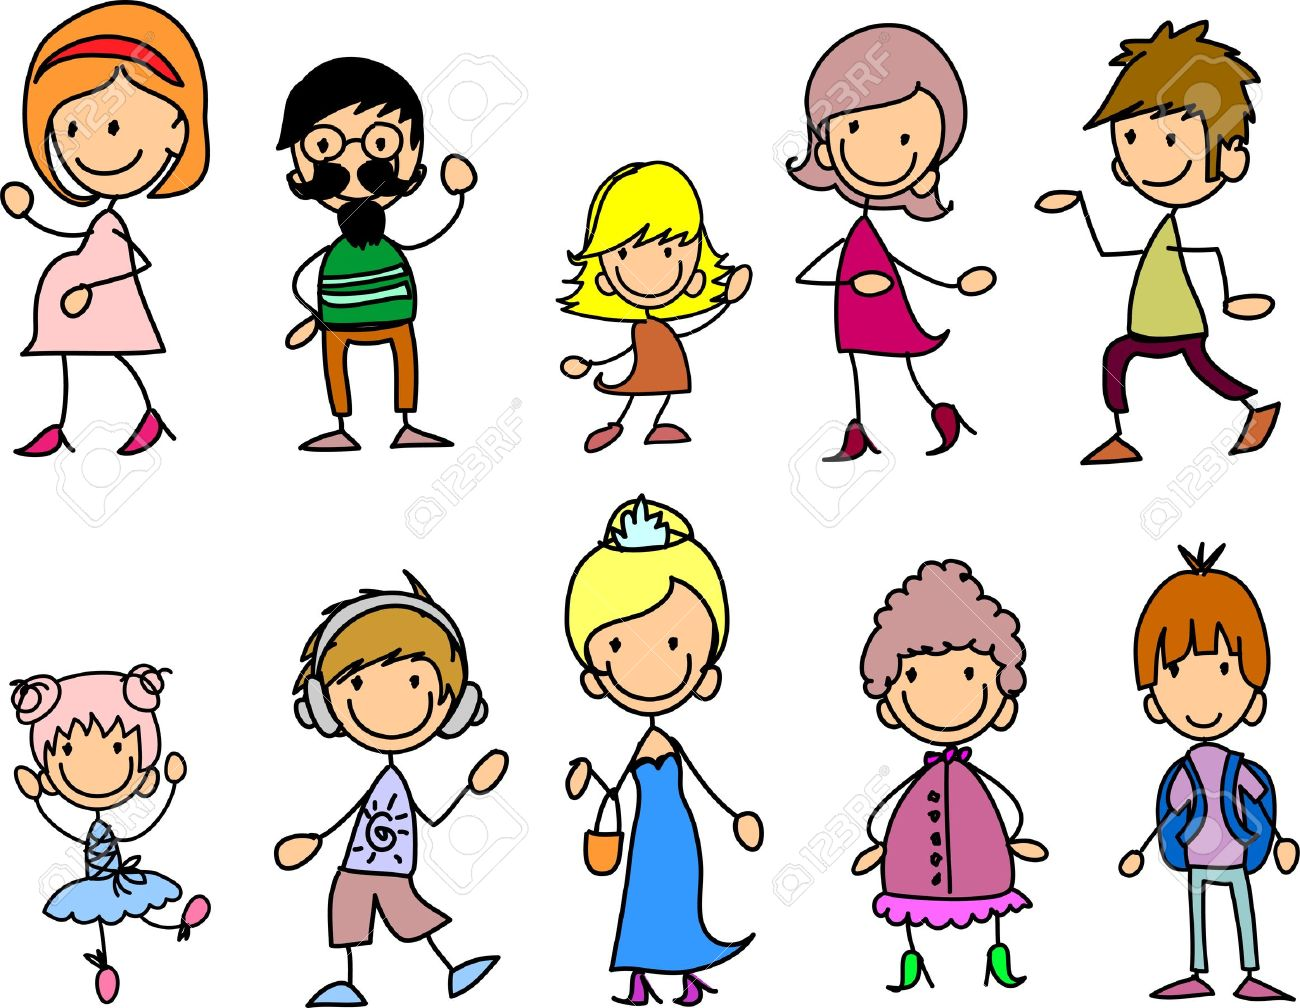 Doodle Members Of Large Families Royalty Free Cliparts, Vectors ...